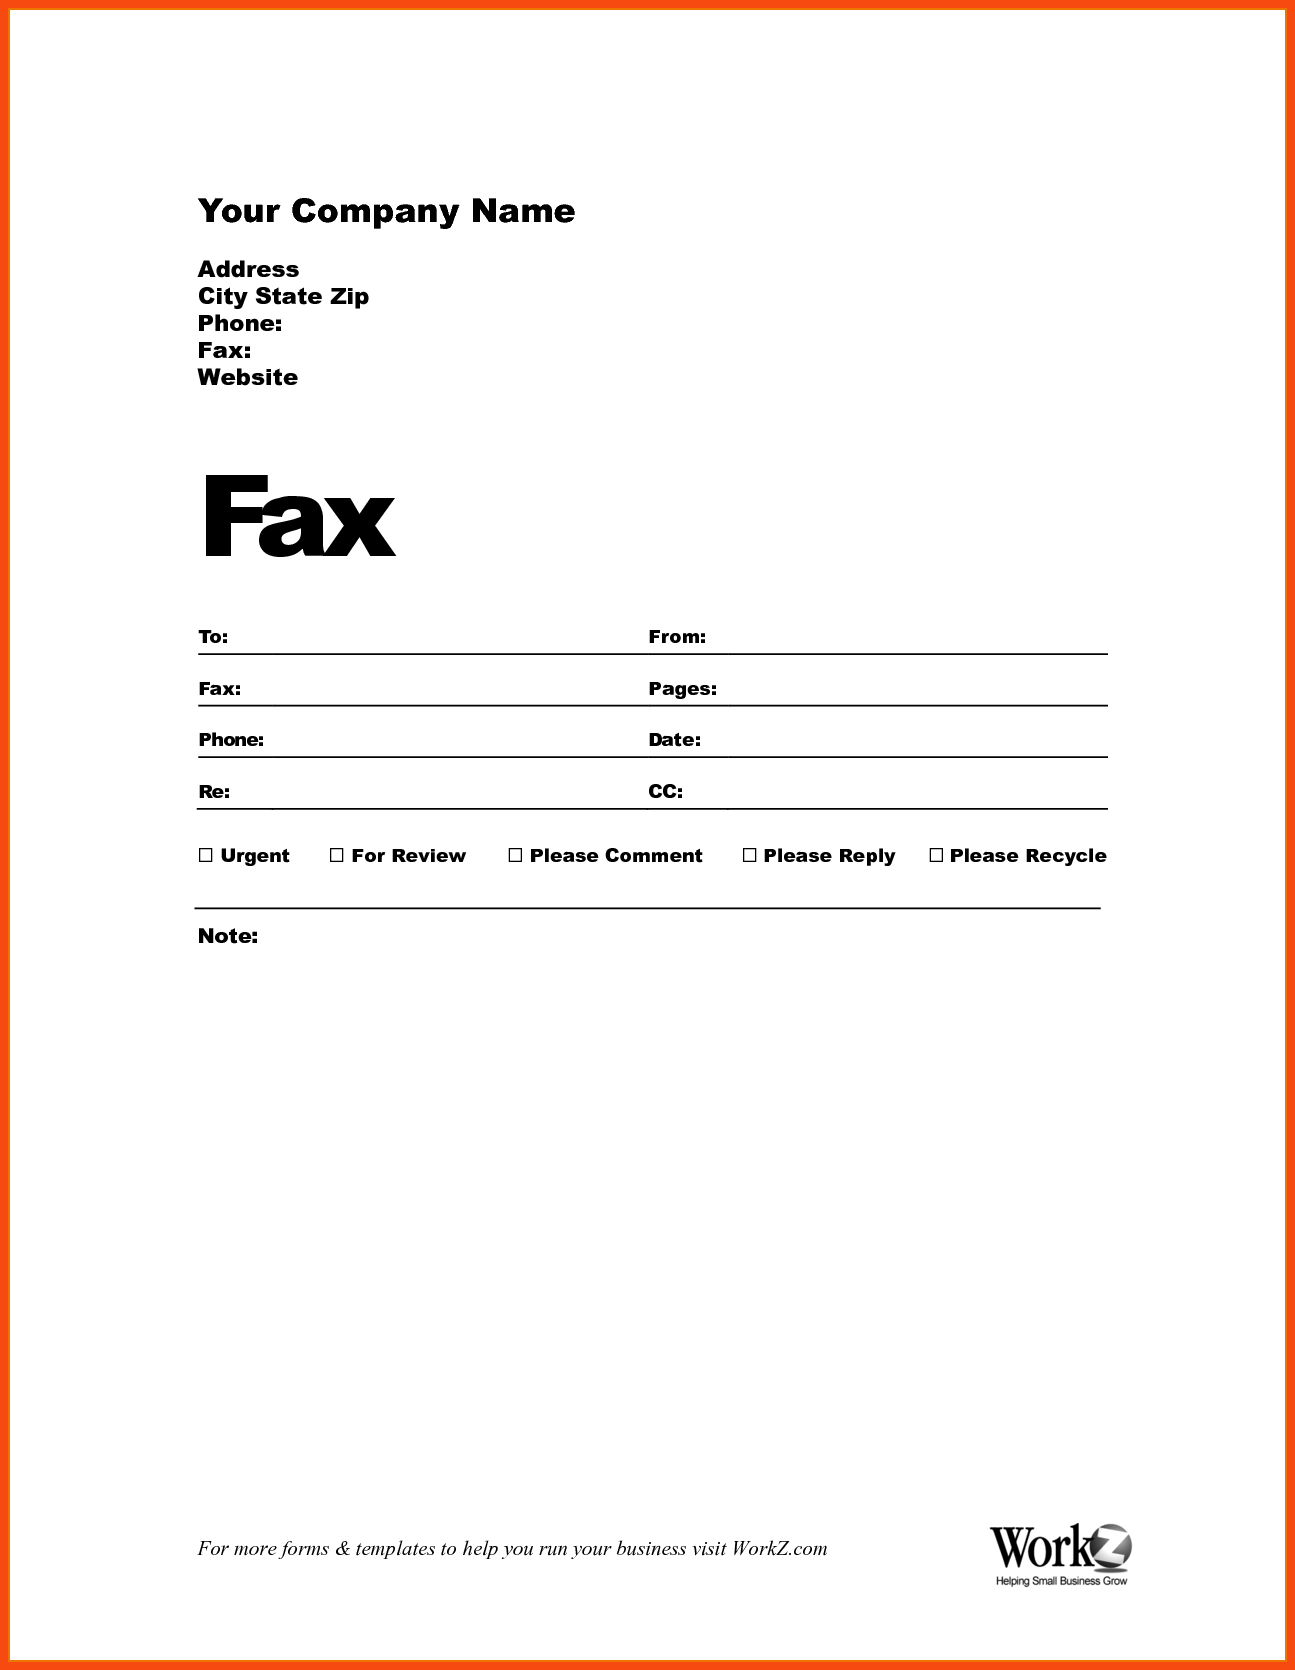 New Cover Fax Sheet Invoice template word, Fax cover